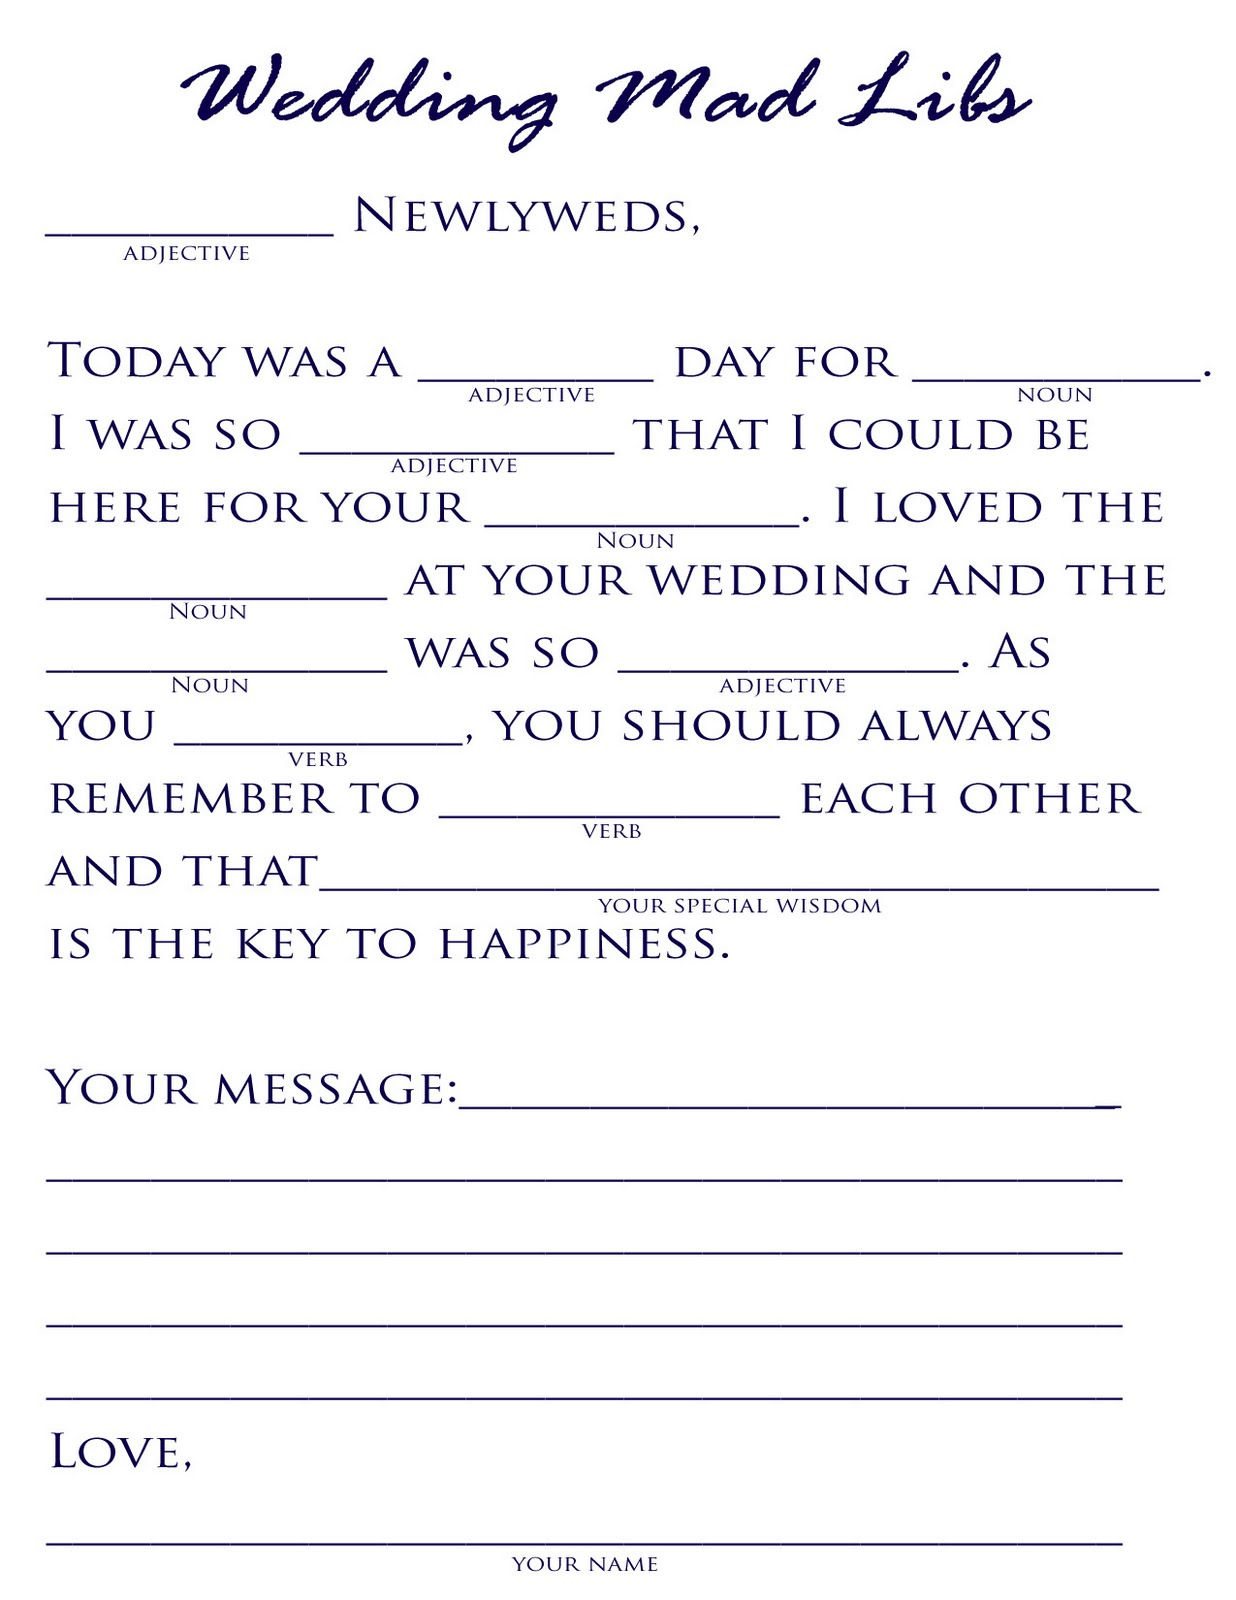 18 Fun Wedding Mad Libs